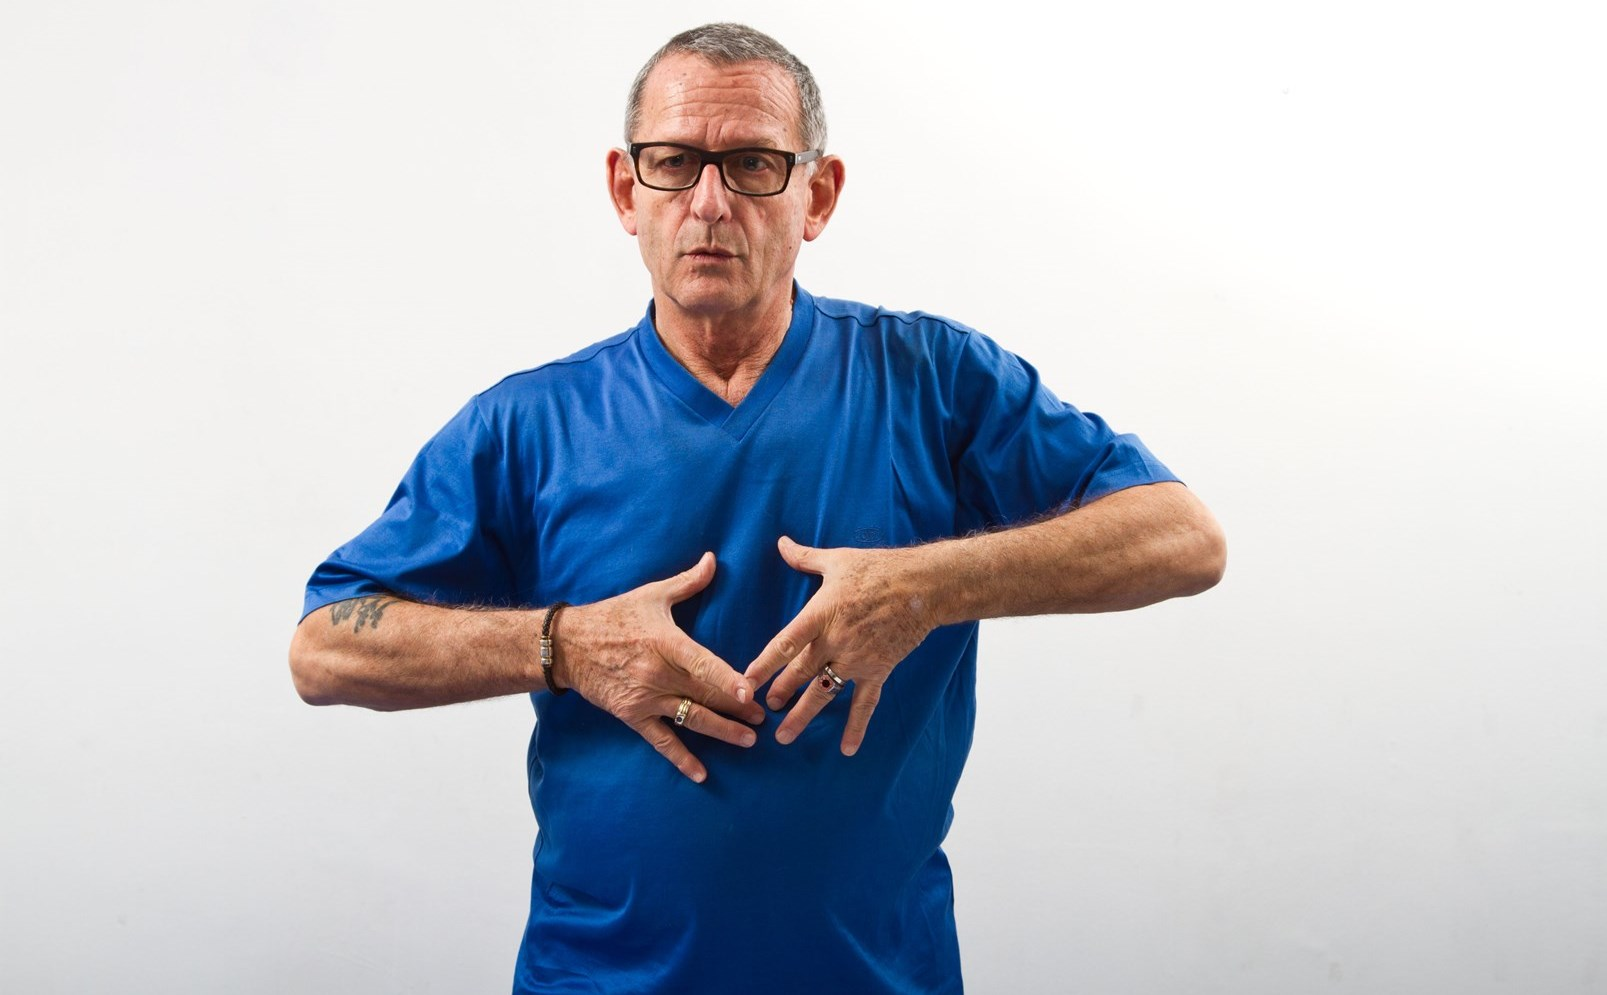 Movement and rhythm exercises can alleviate Parkinson's symptoms, says Alex Kerten. Photo by Debbie Zimelman